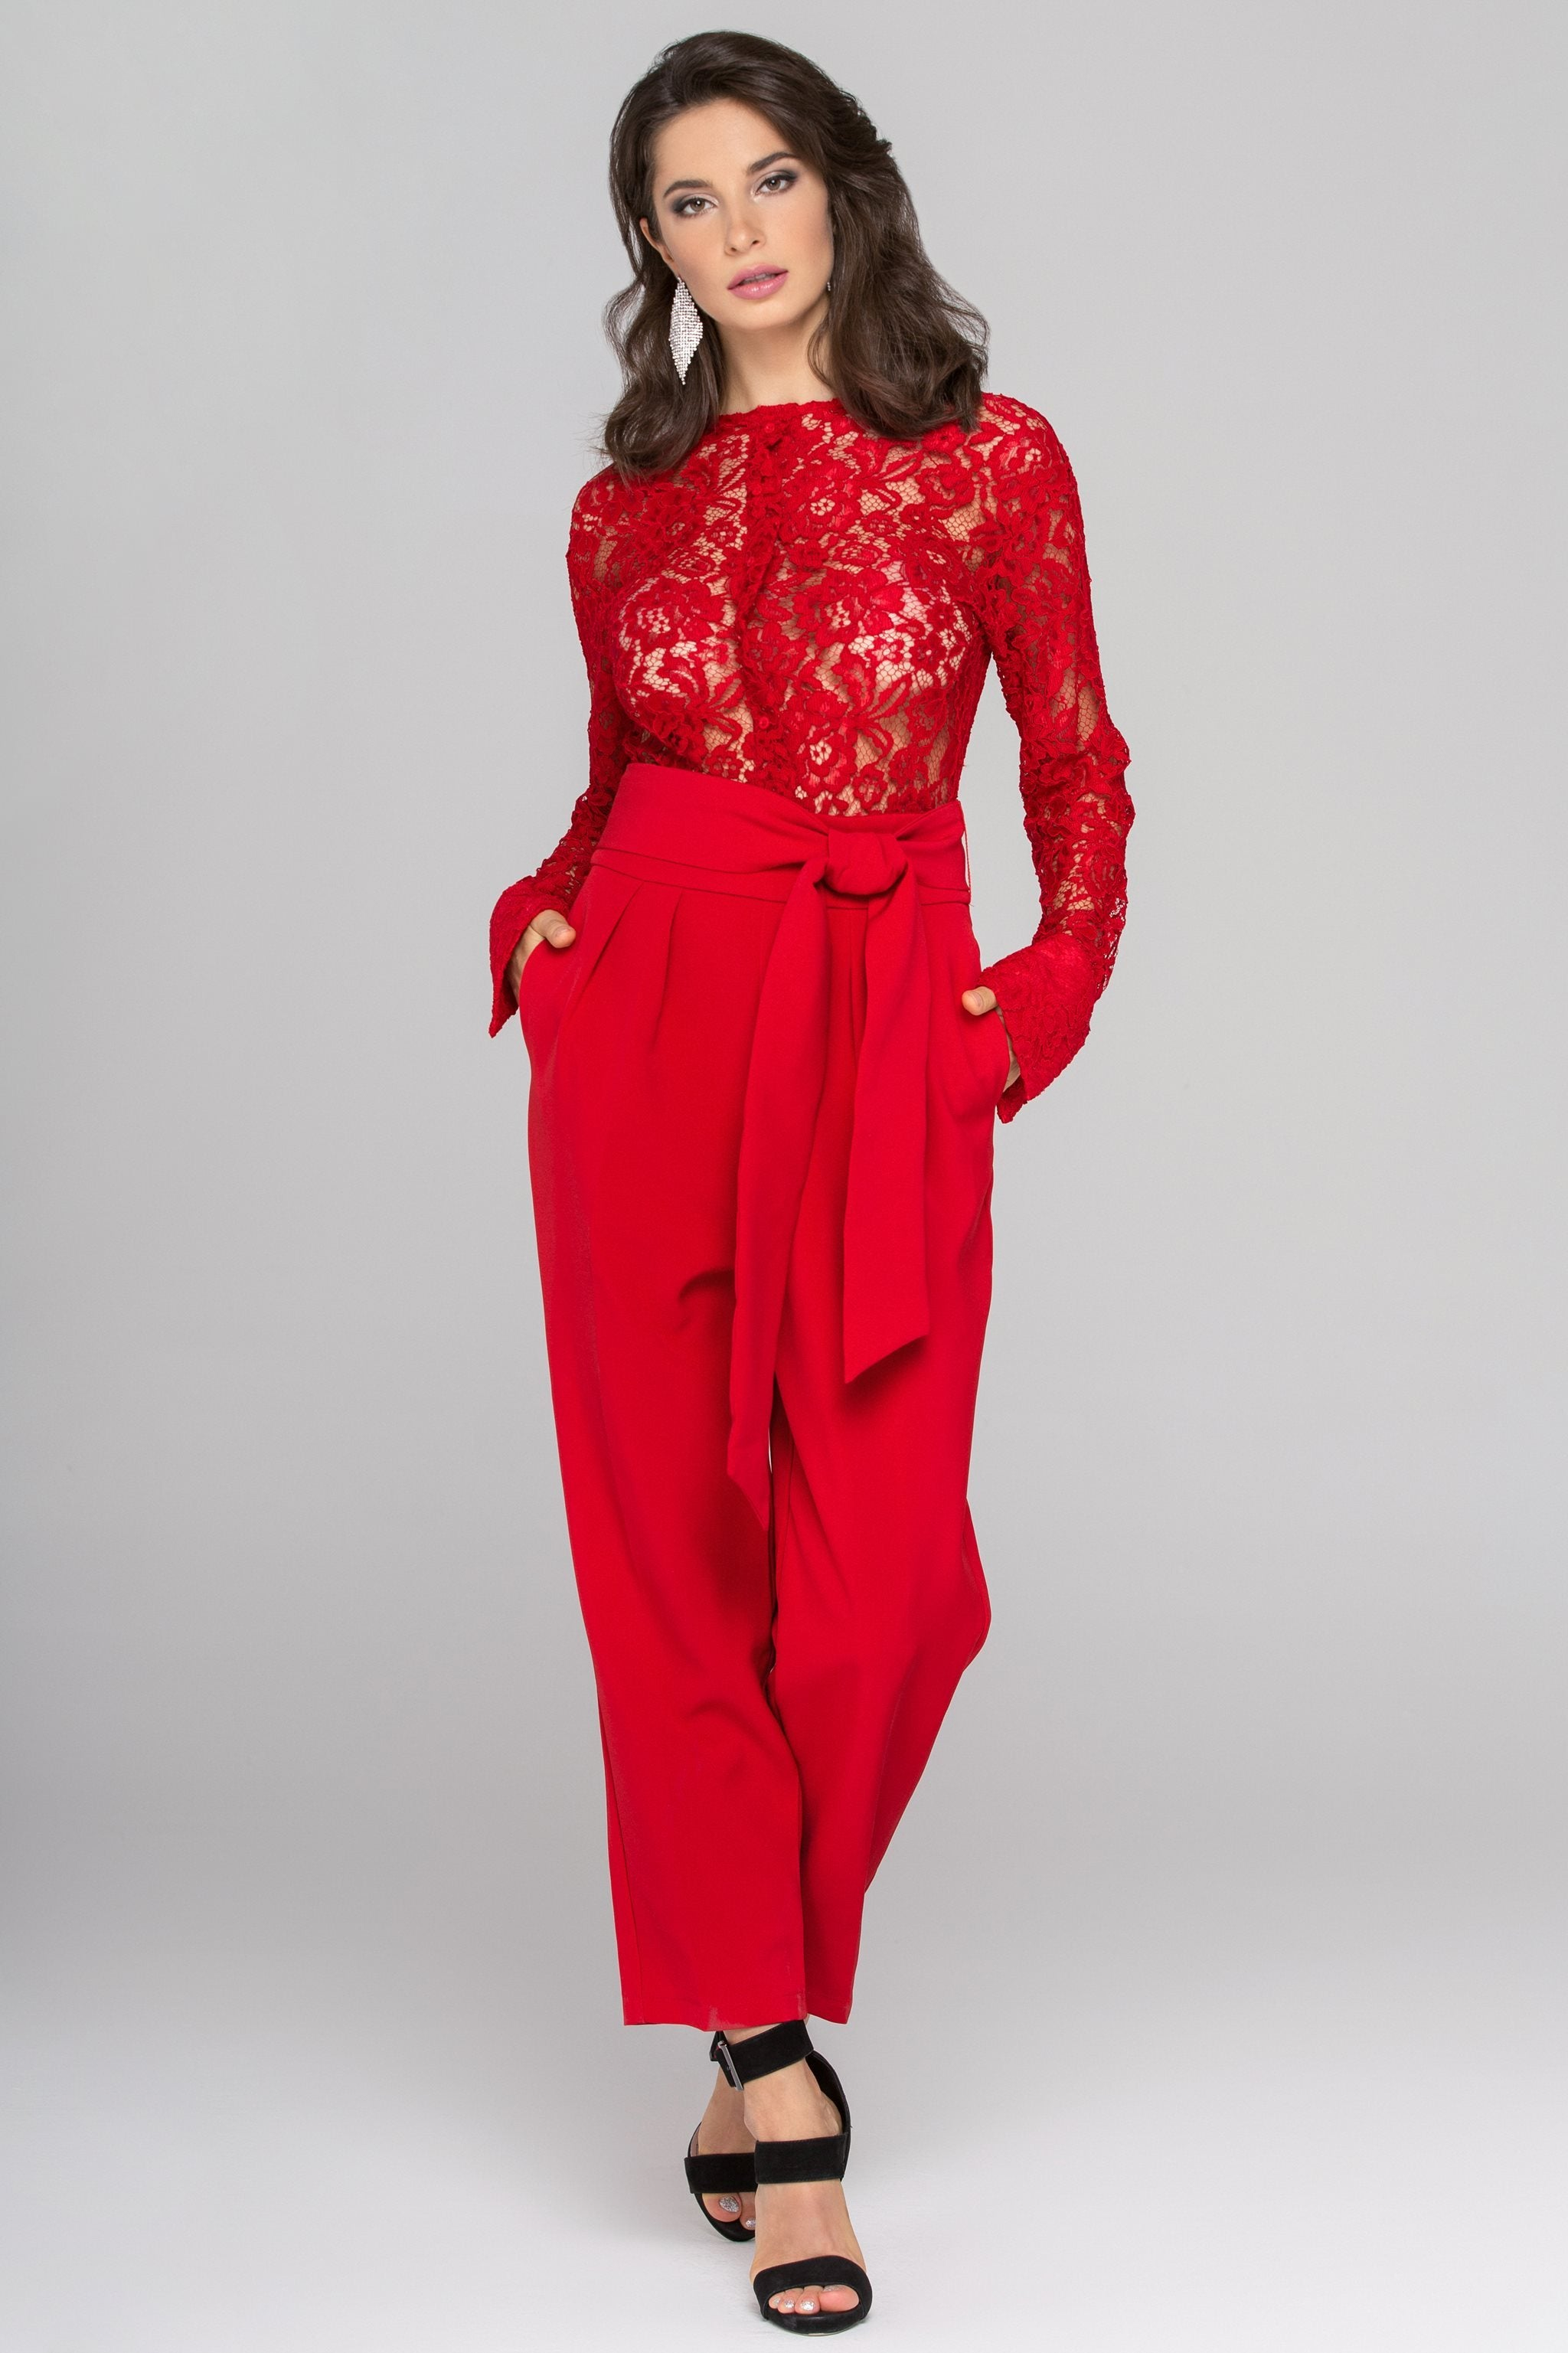 Rania Fawaz - Red Lace Sleeved Jumpsuit